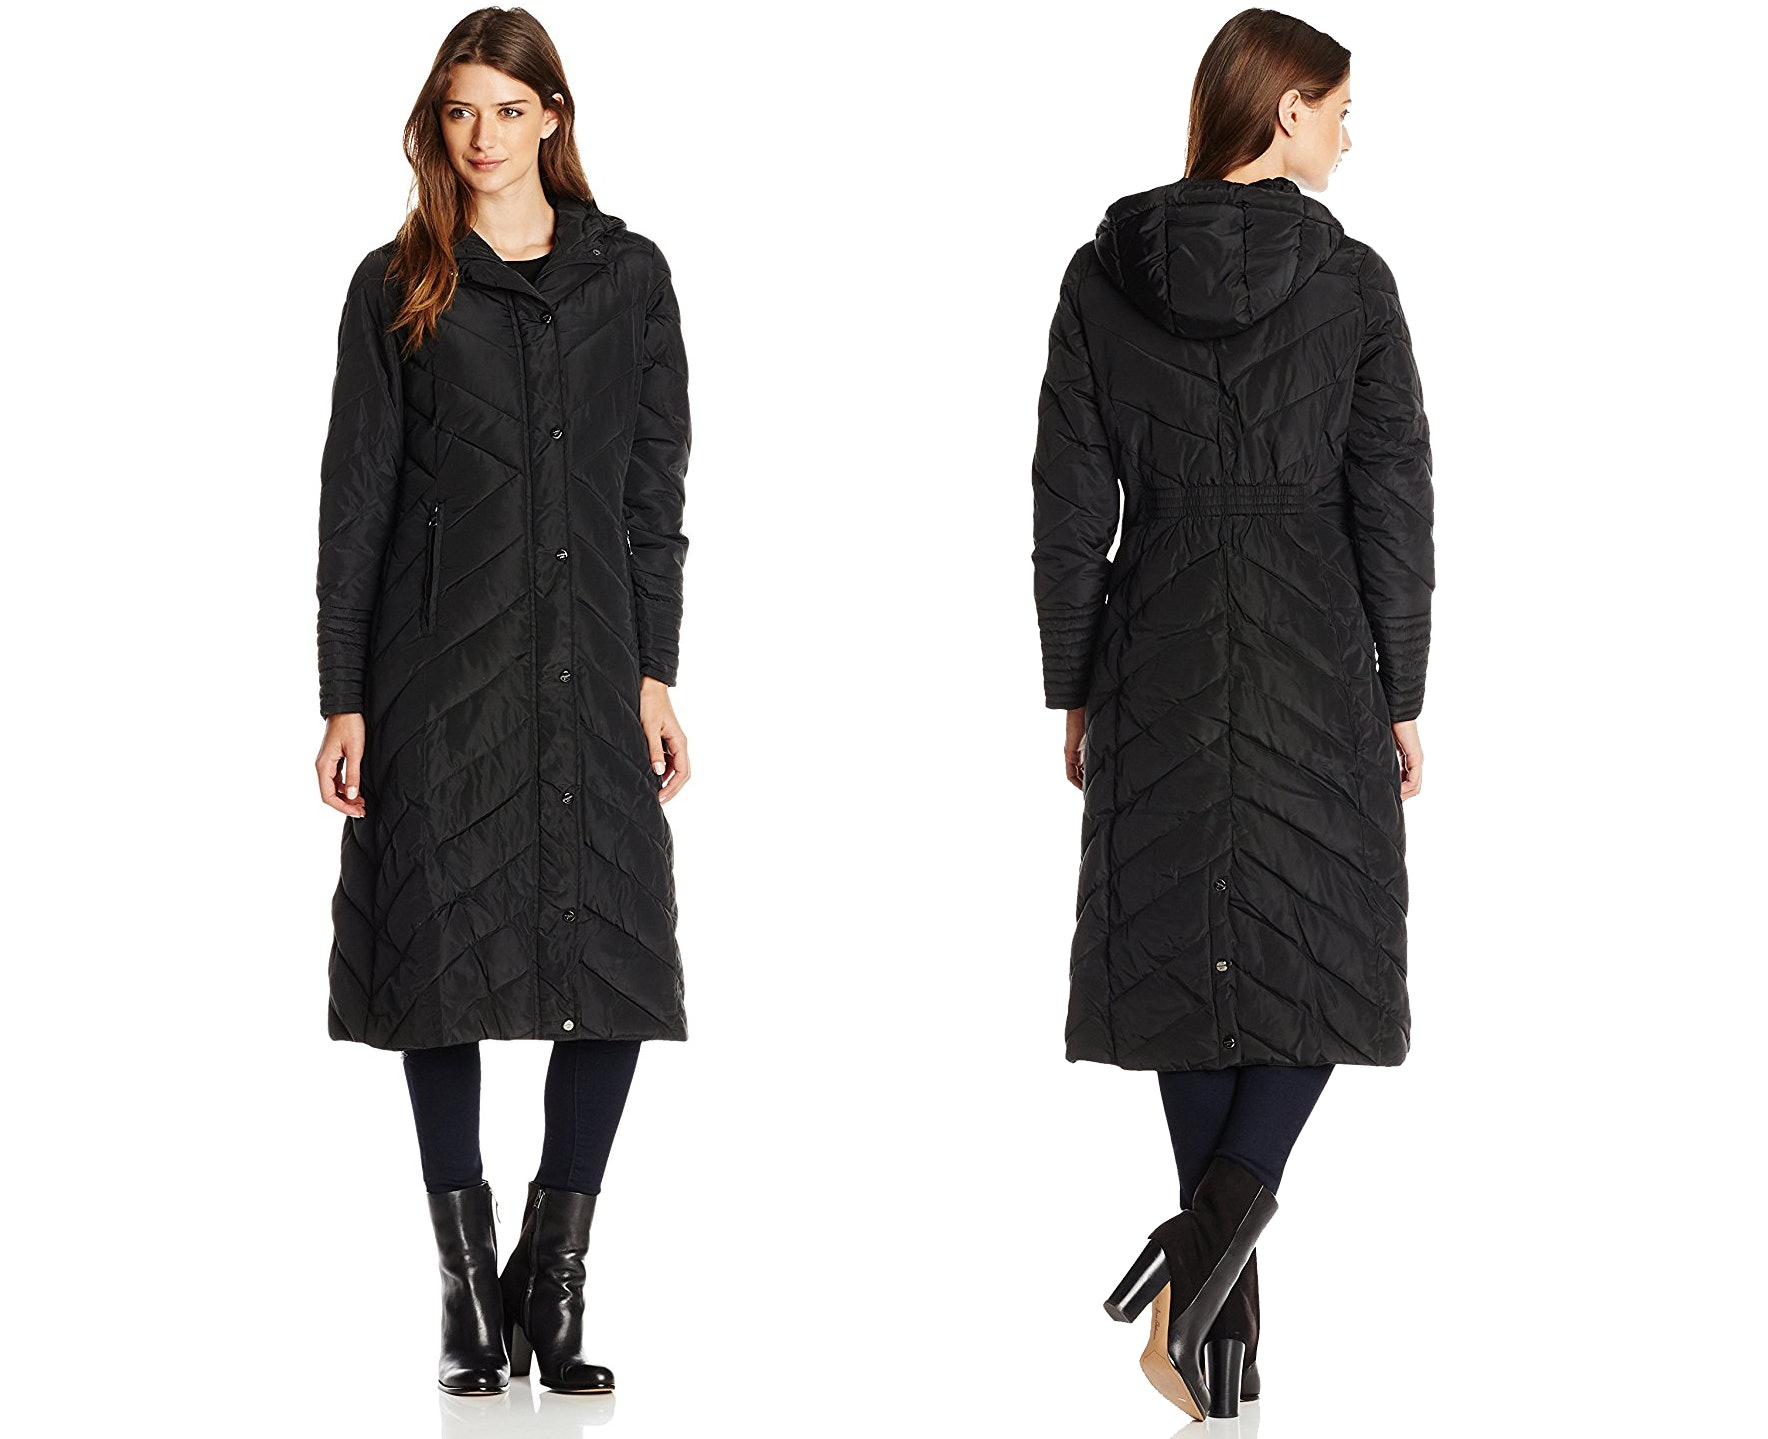 387ba2a39 10 Warmest Women's Winter Coats Under $100